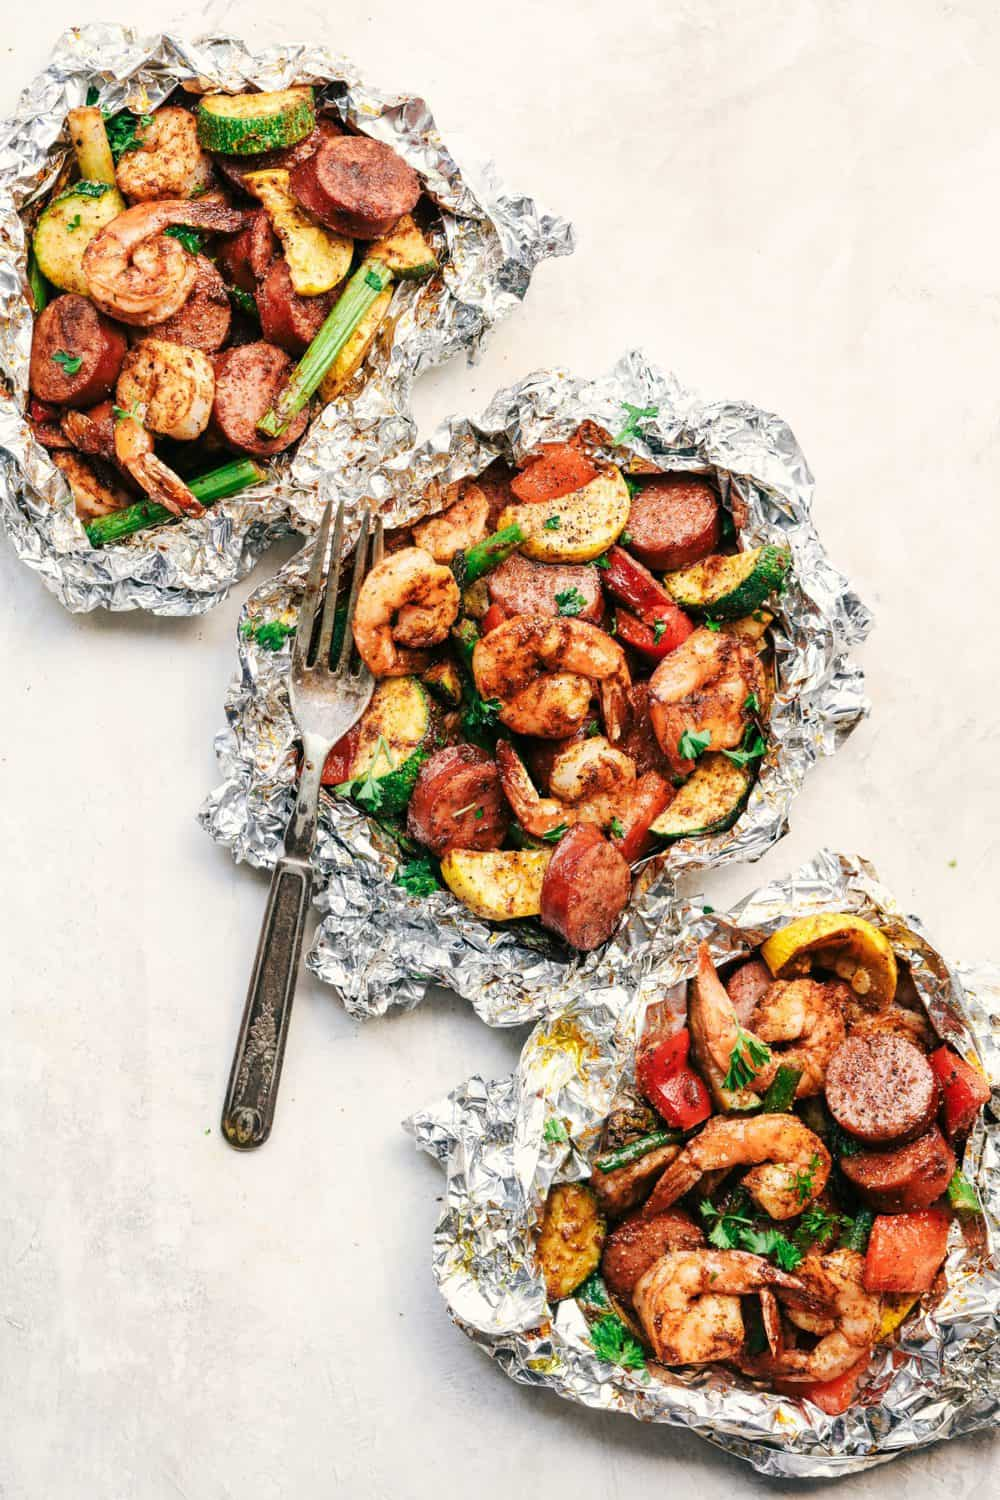 Cajun Shrimp and Sausage Vegetable Foil Packets 3